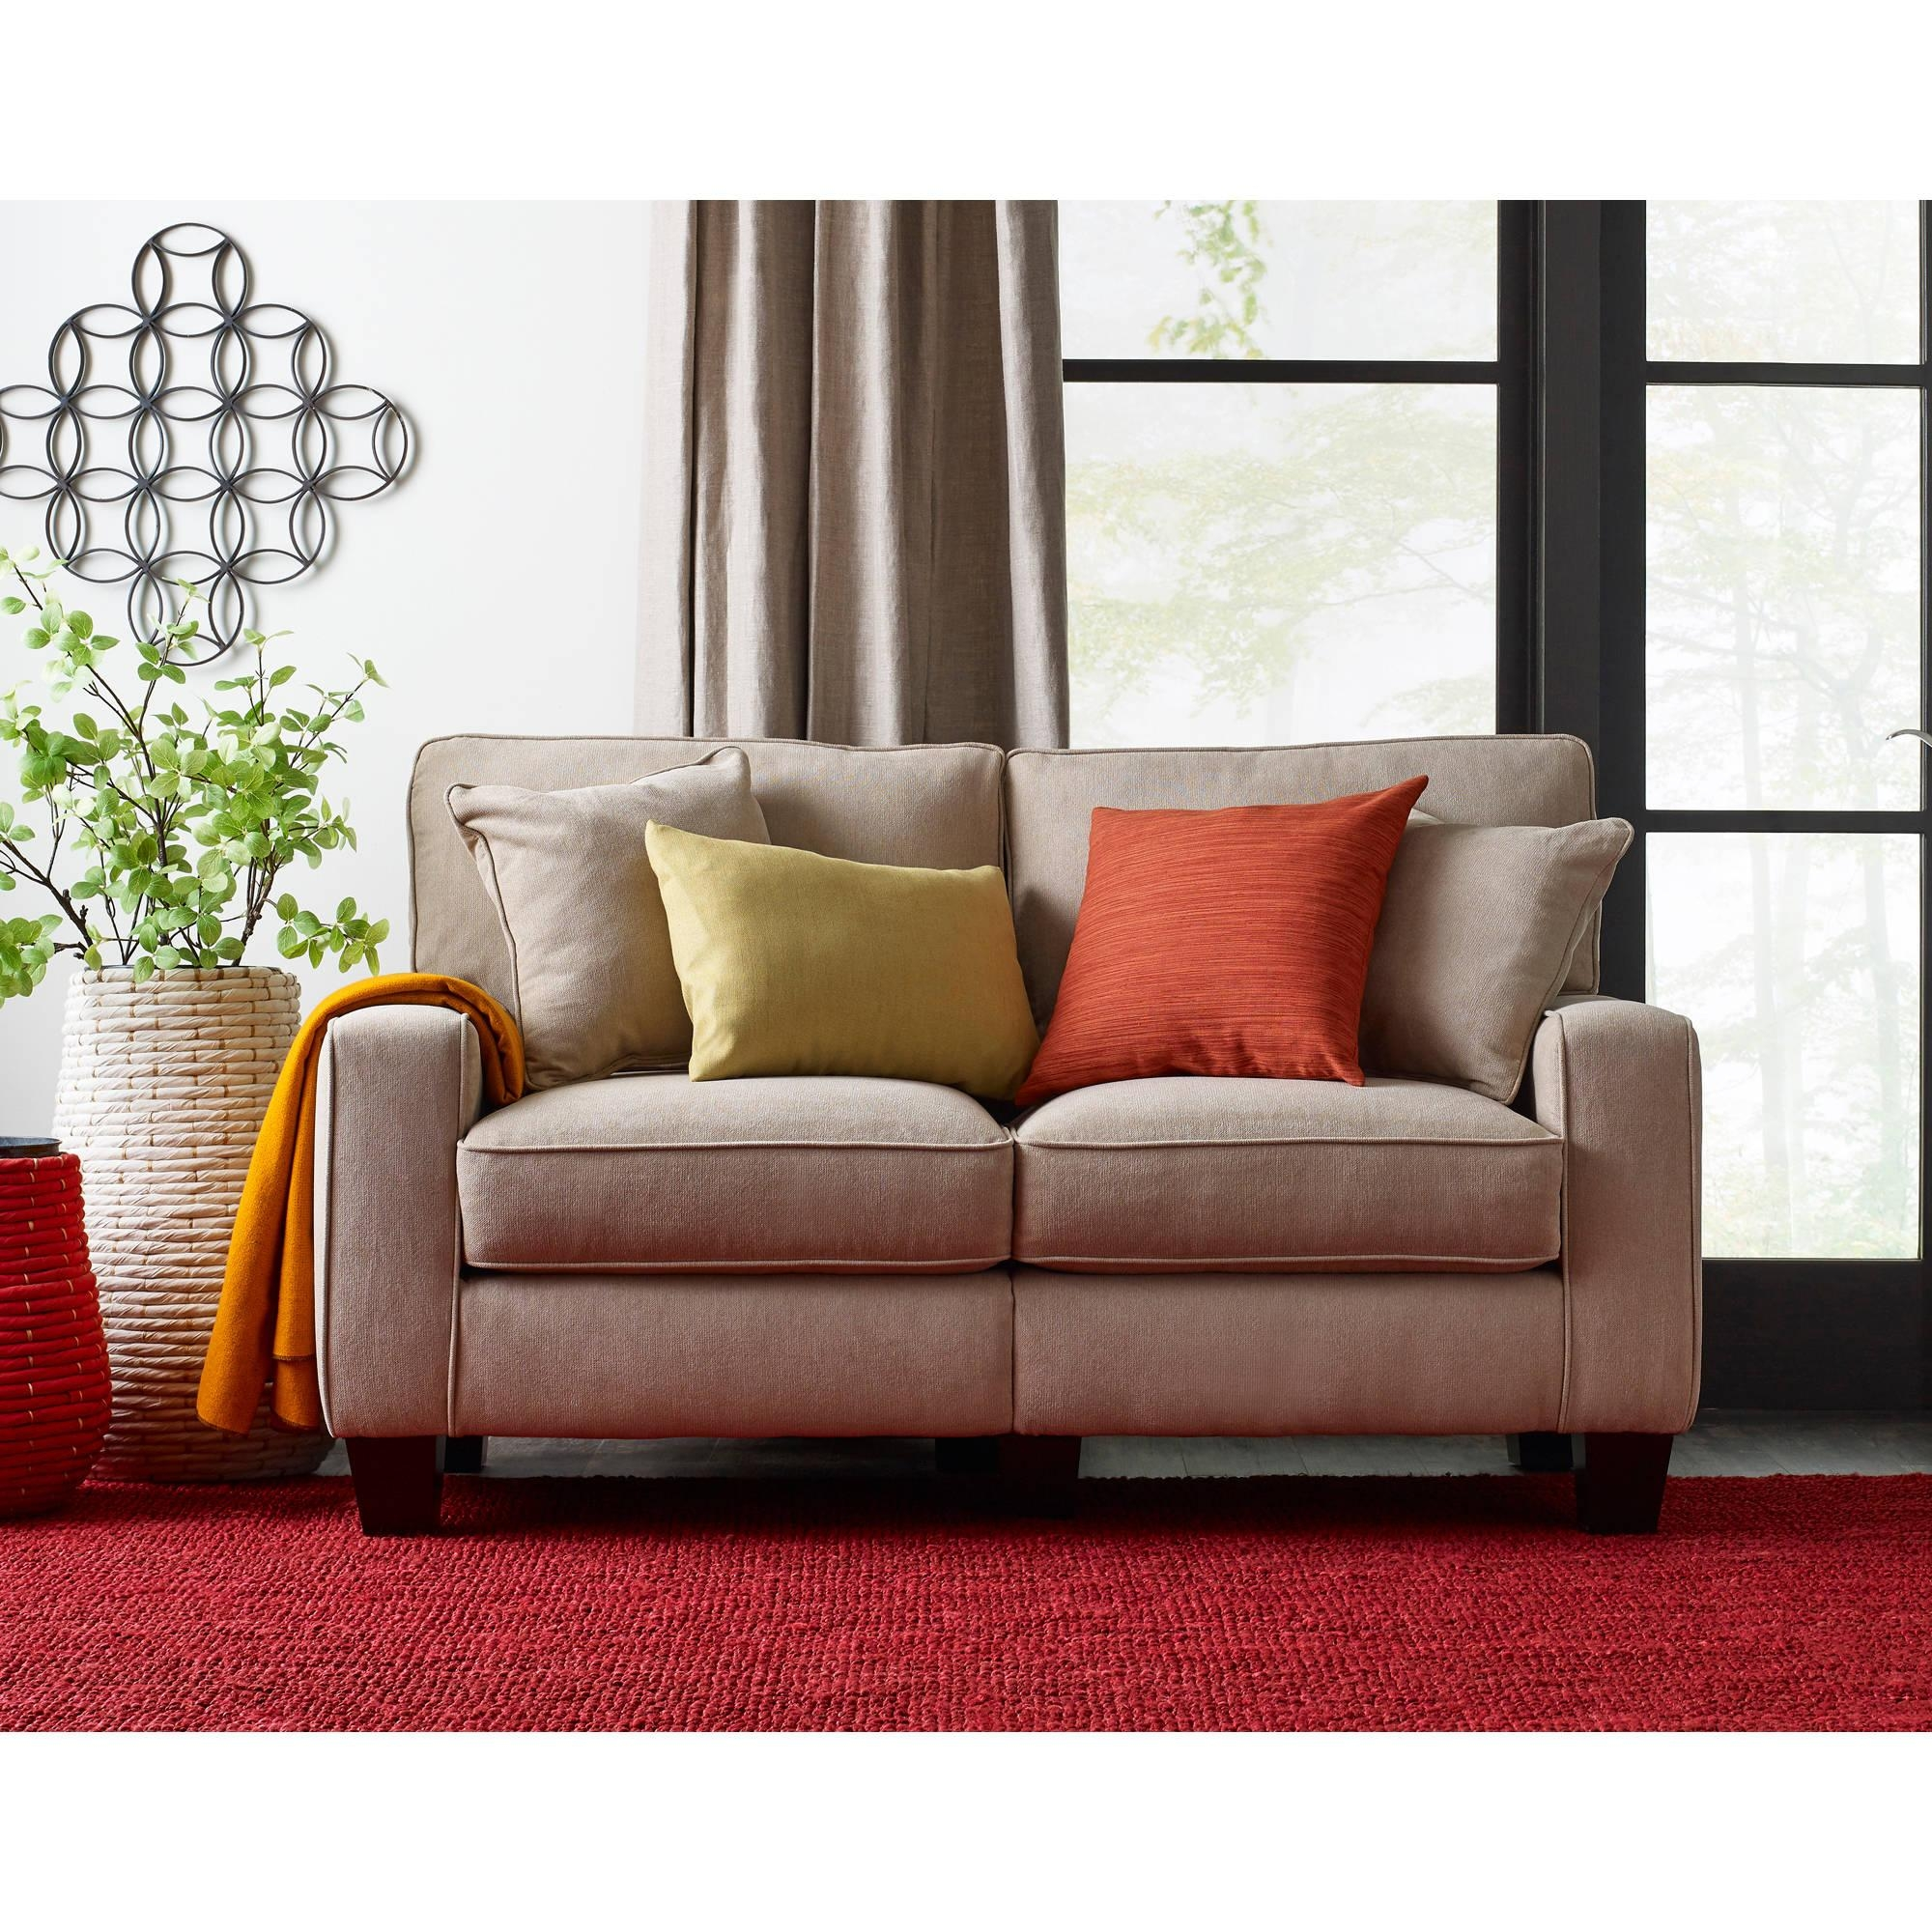 Sectional Sofas Under 600 | Centerfieldbar For Sectional Sofas Under (View 11 of 20)